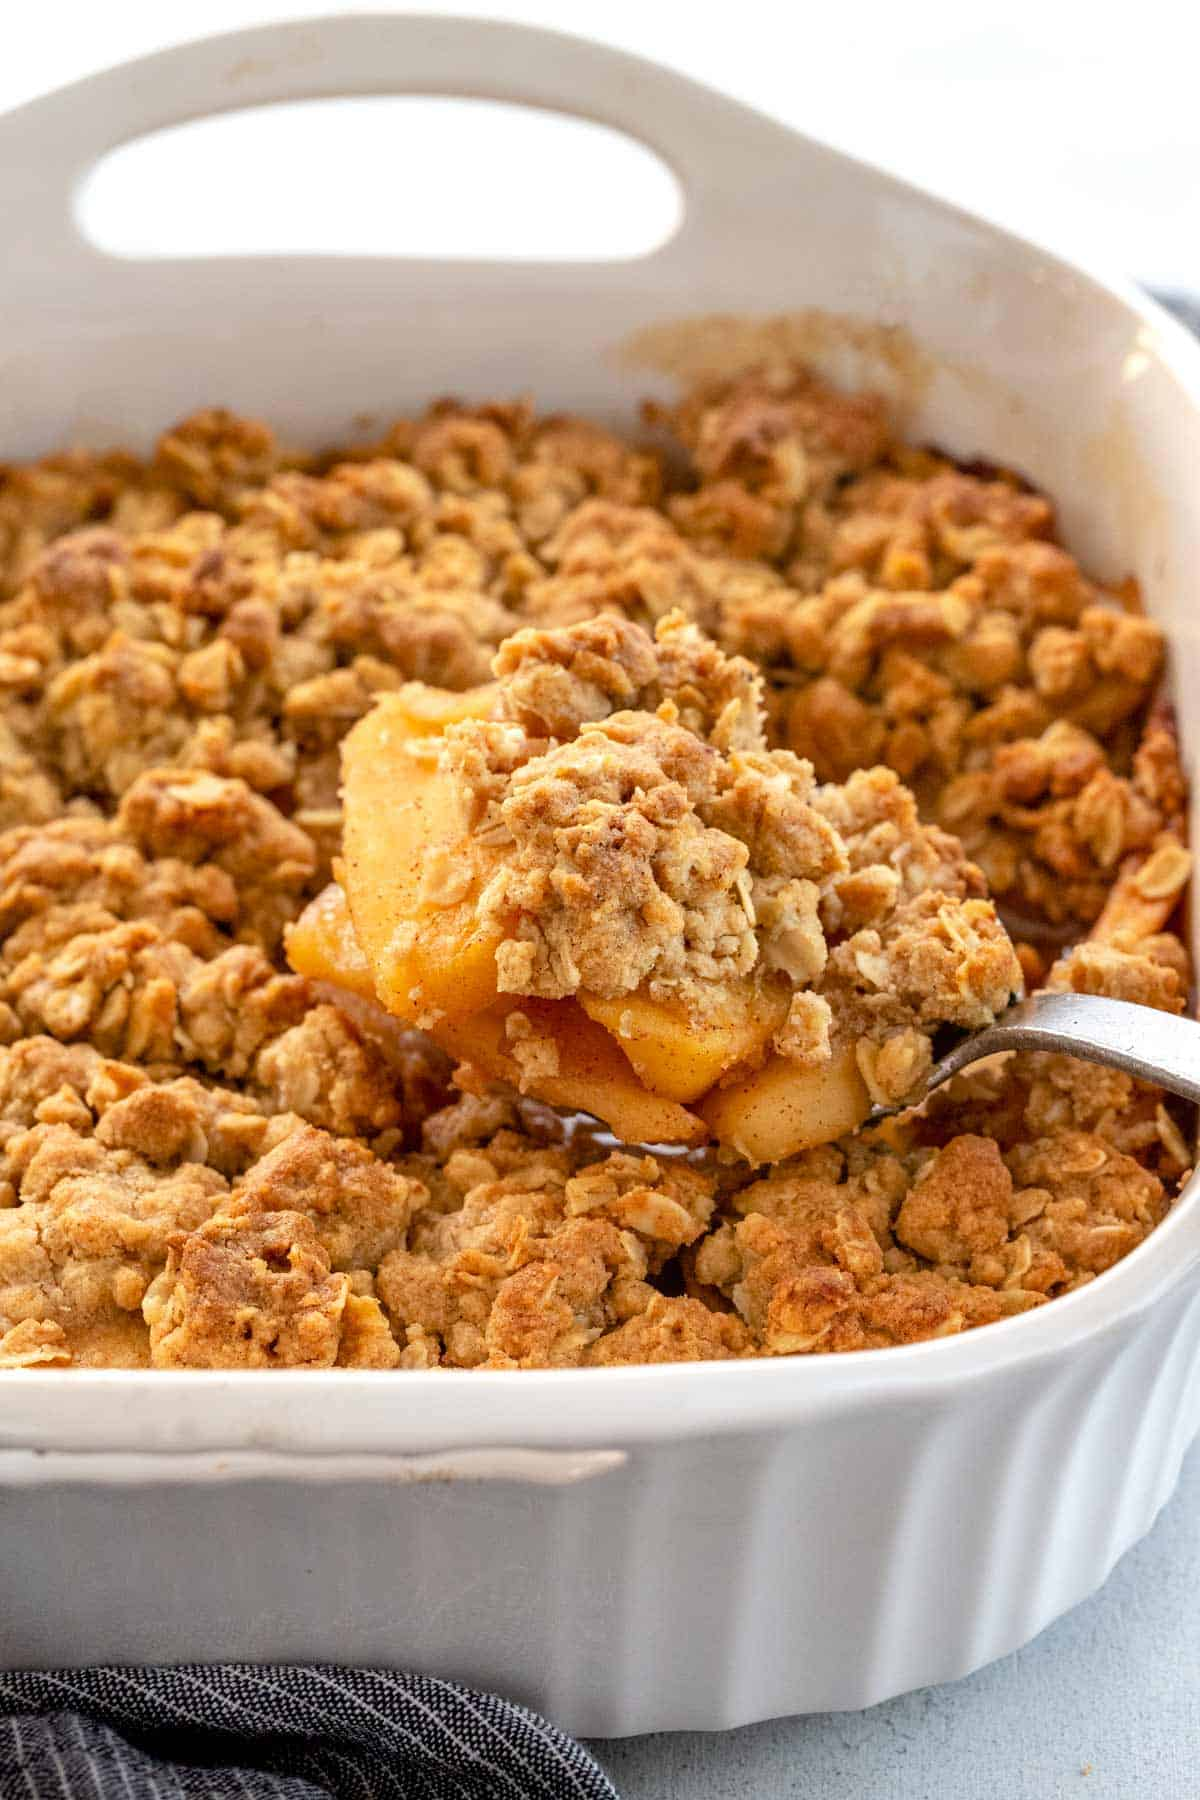 Apple crisp from the oven with golden crunchy topping in a casserole dish